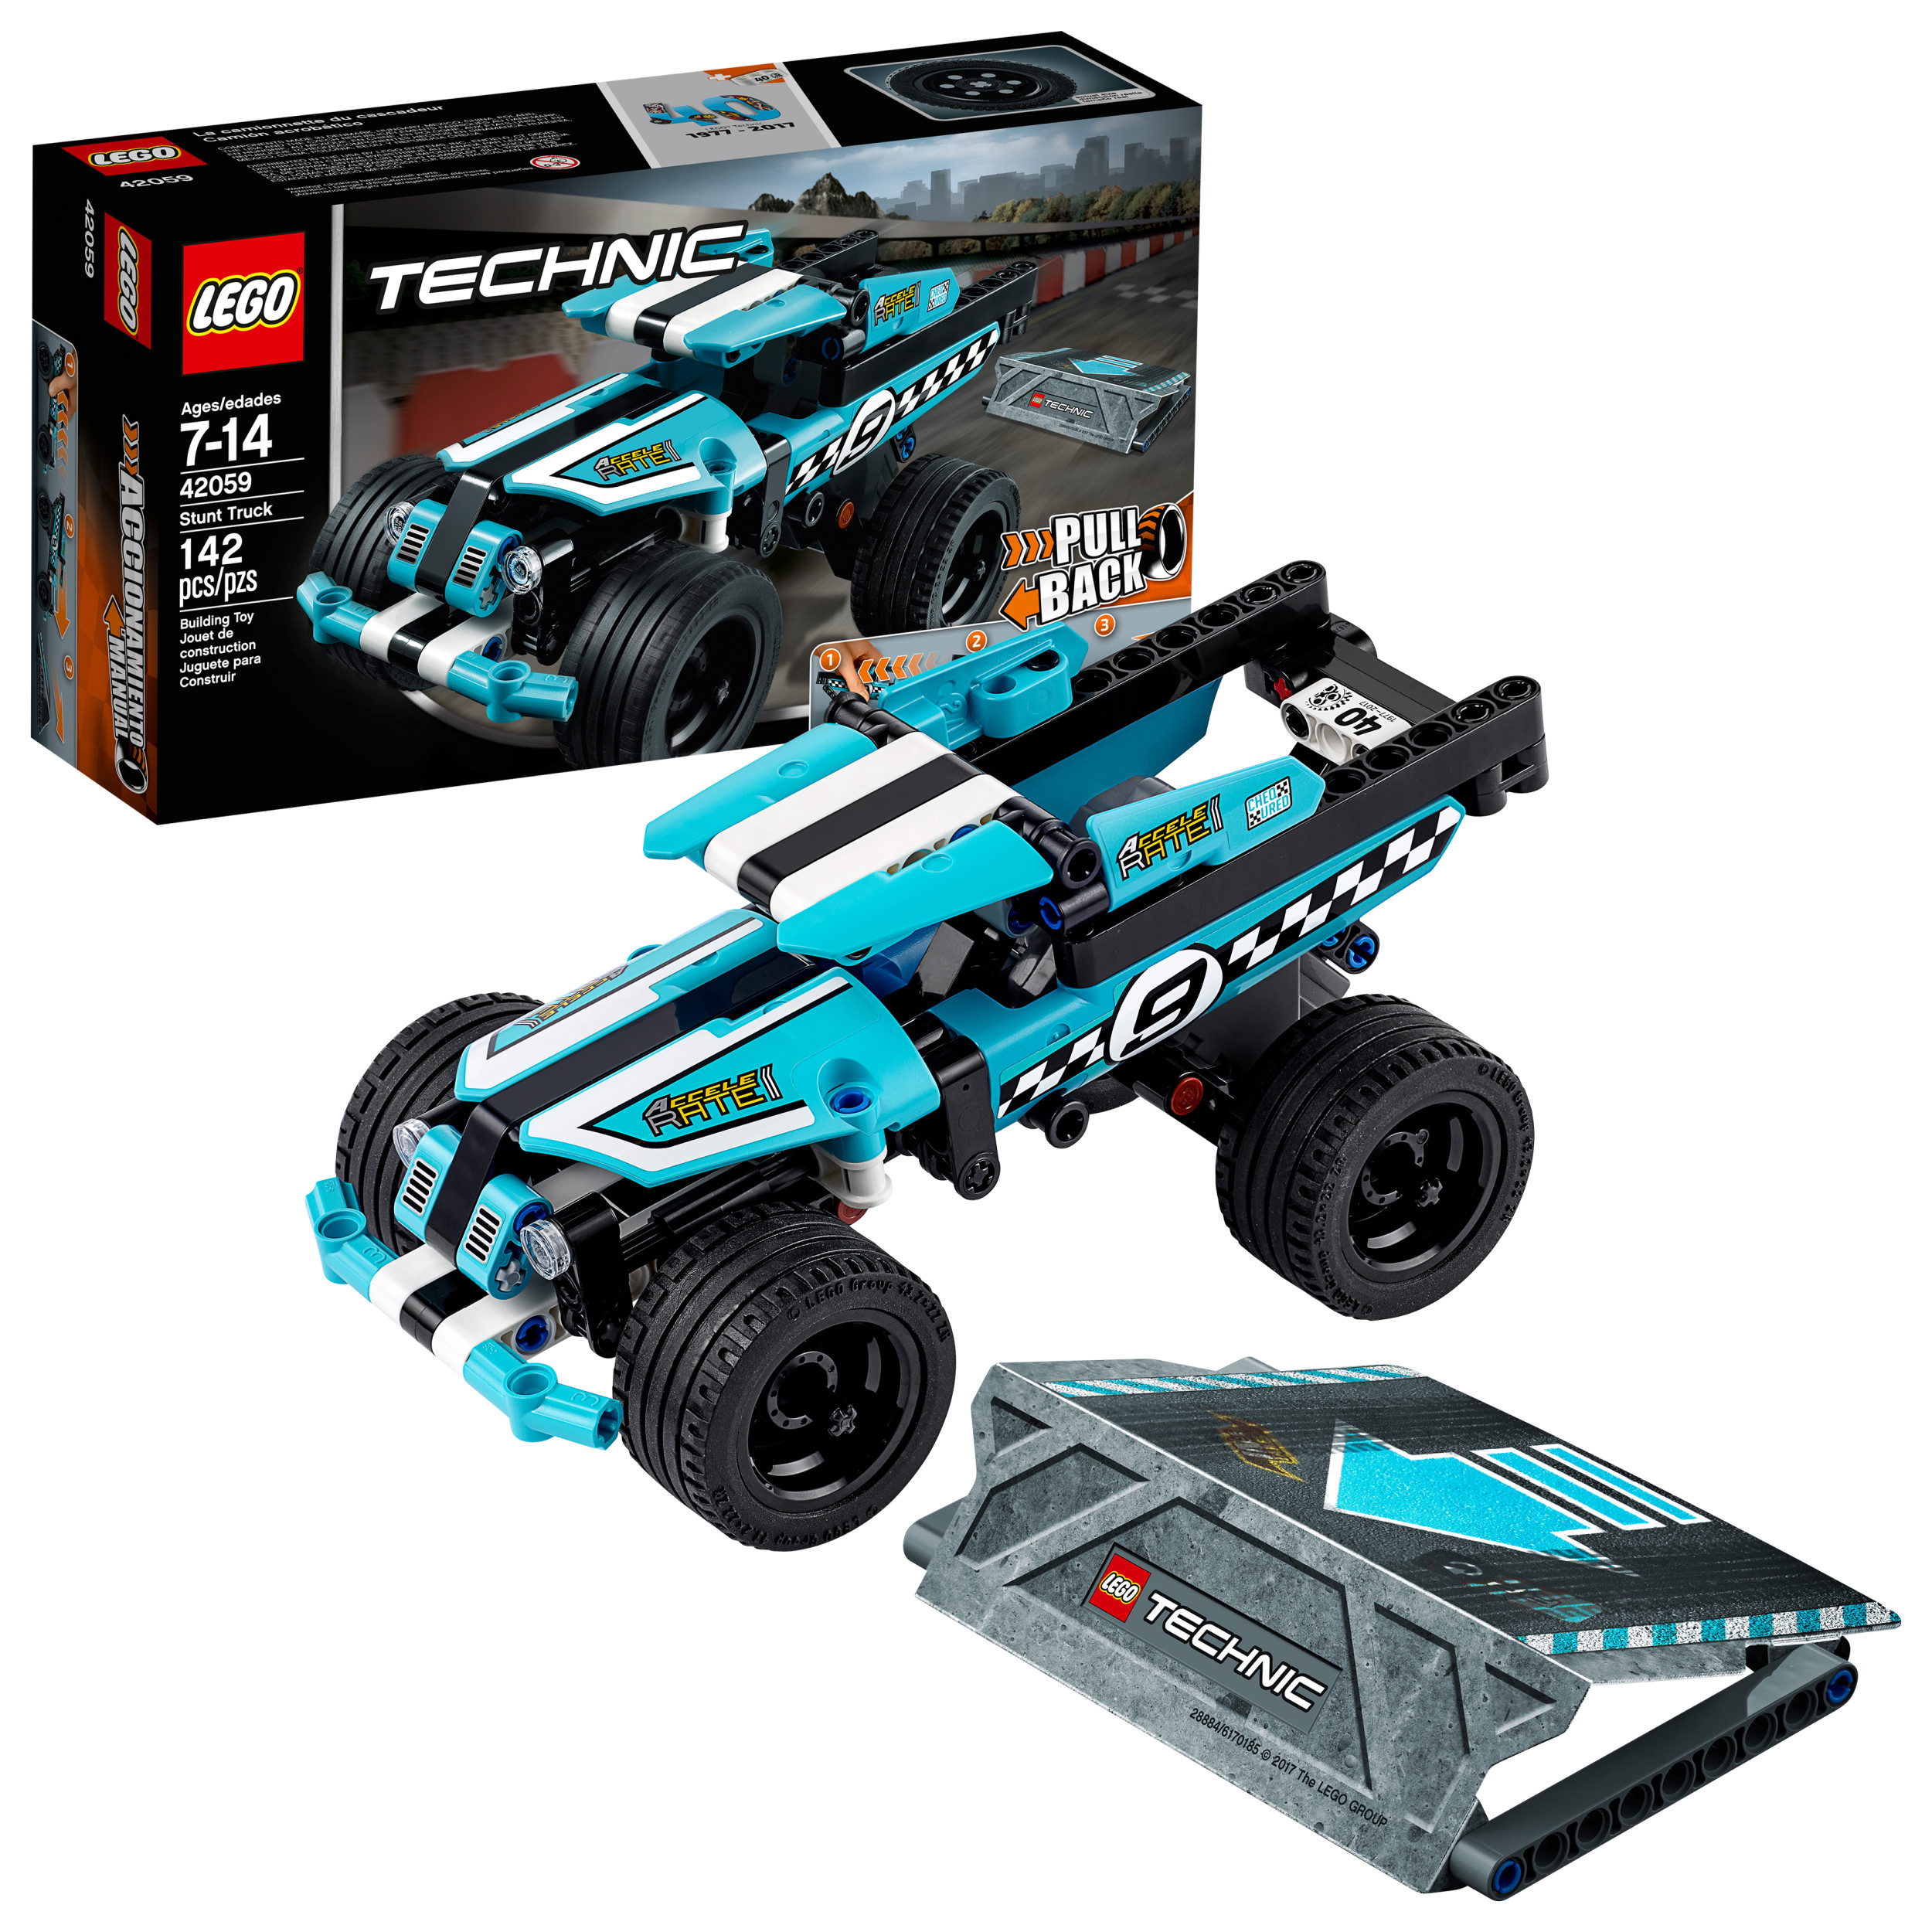 Lego� Technic Stunt Truck 42059 by LEGO Systems Inc.